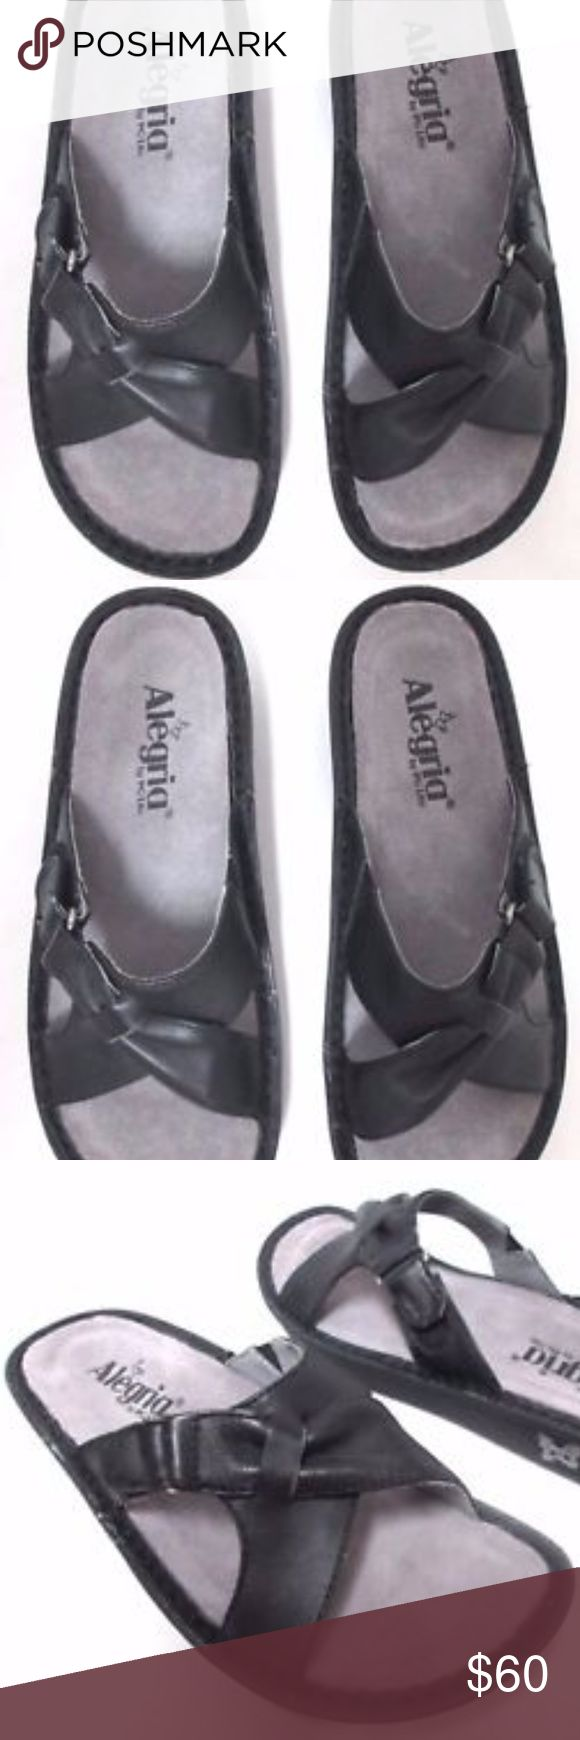 """Alegria Vio leather slides sandals NEW Size 7 Alegria sandals new without box. Size 7, heel is 1"""". Pet and smoke free home. Alegria Shoes Sandals"""